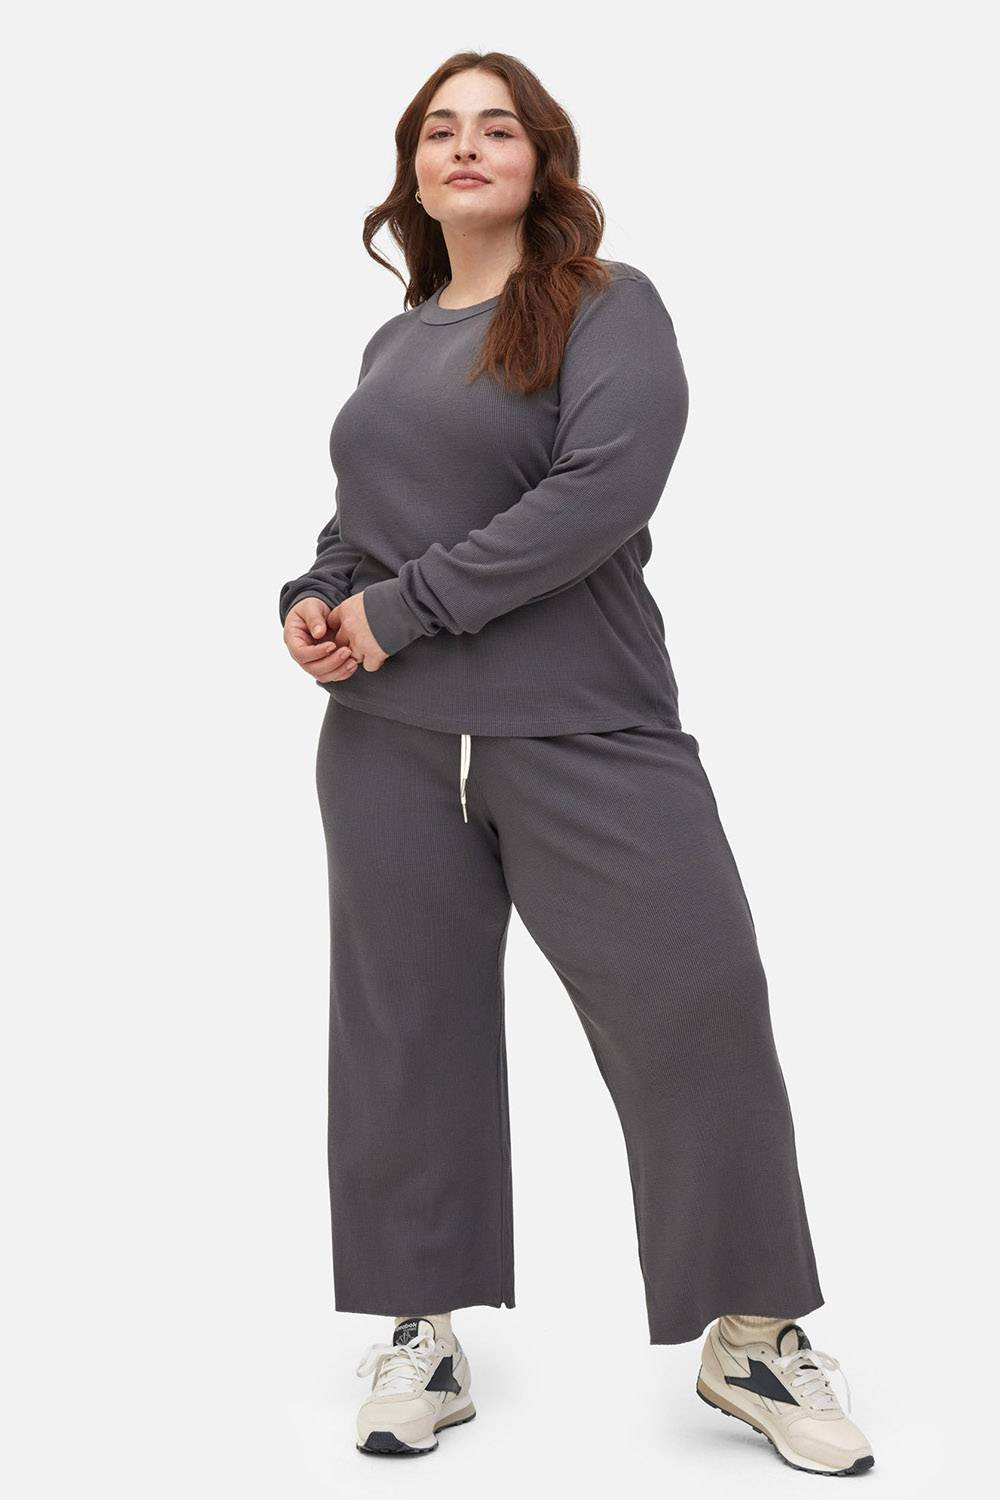 mate cheap ethical plus size activewear